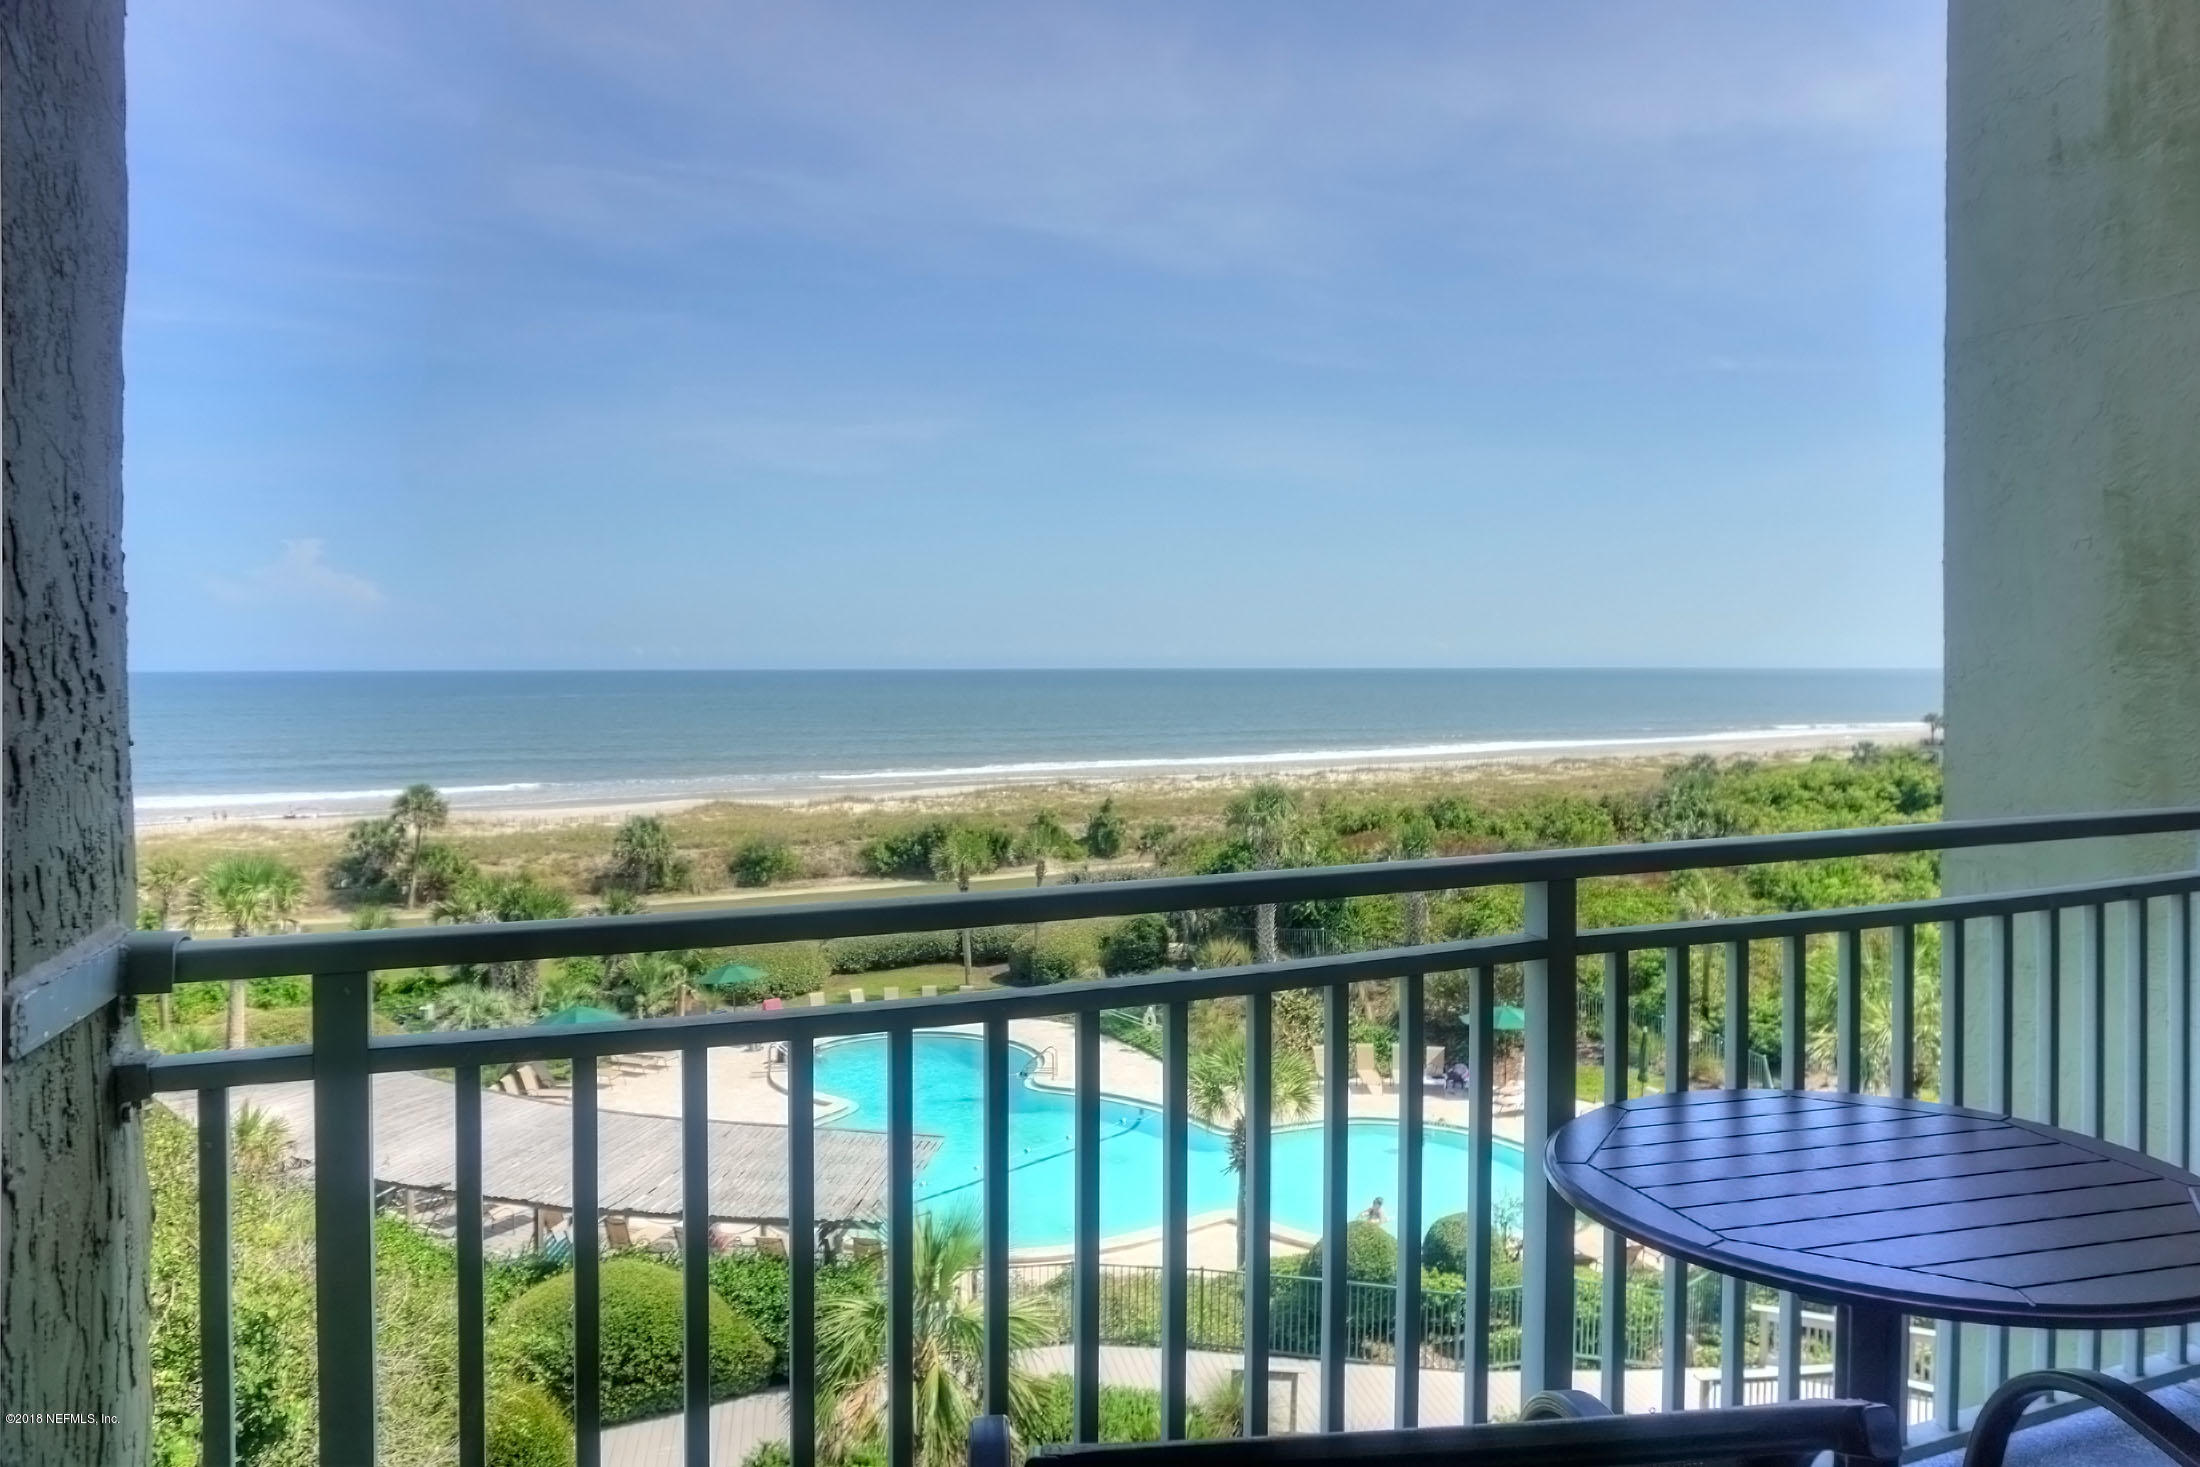 1352 SHIPWATCH, FERNANDINA BEACH, FLORIDA 32034, 3 Bedrooms Bedrooms, ,3 BathroomsBathrooms,Residential - condos/townhomes,For sale,SHIPWATCH,963213